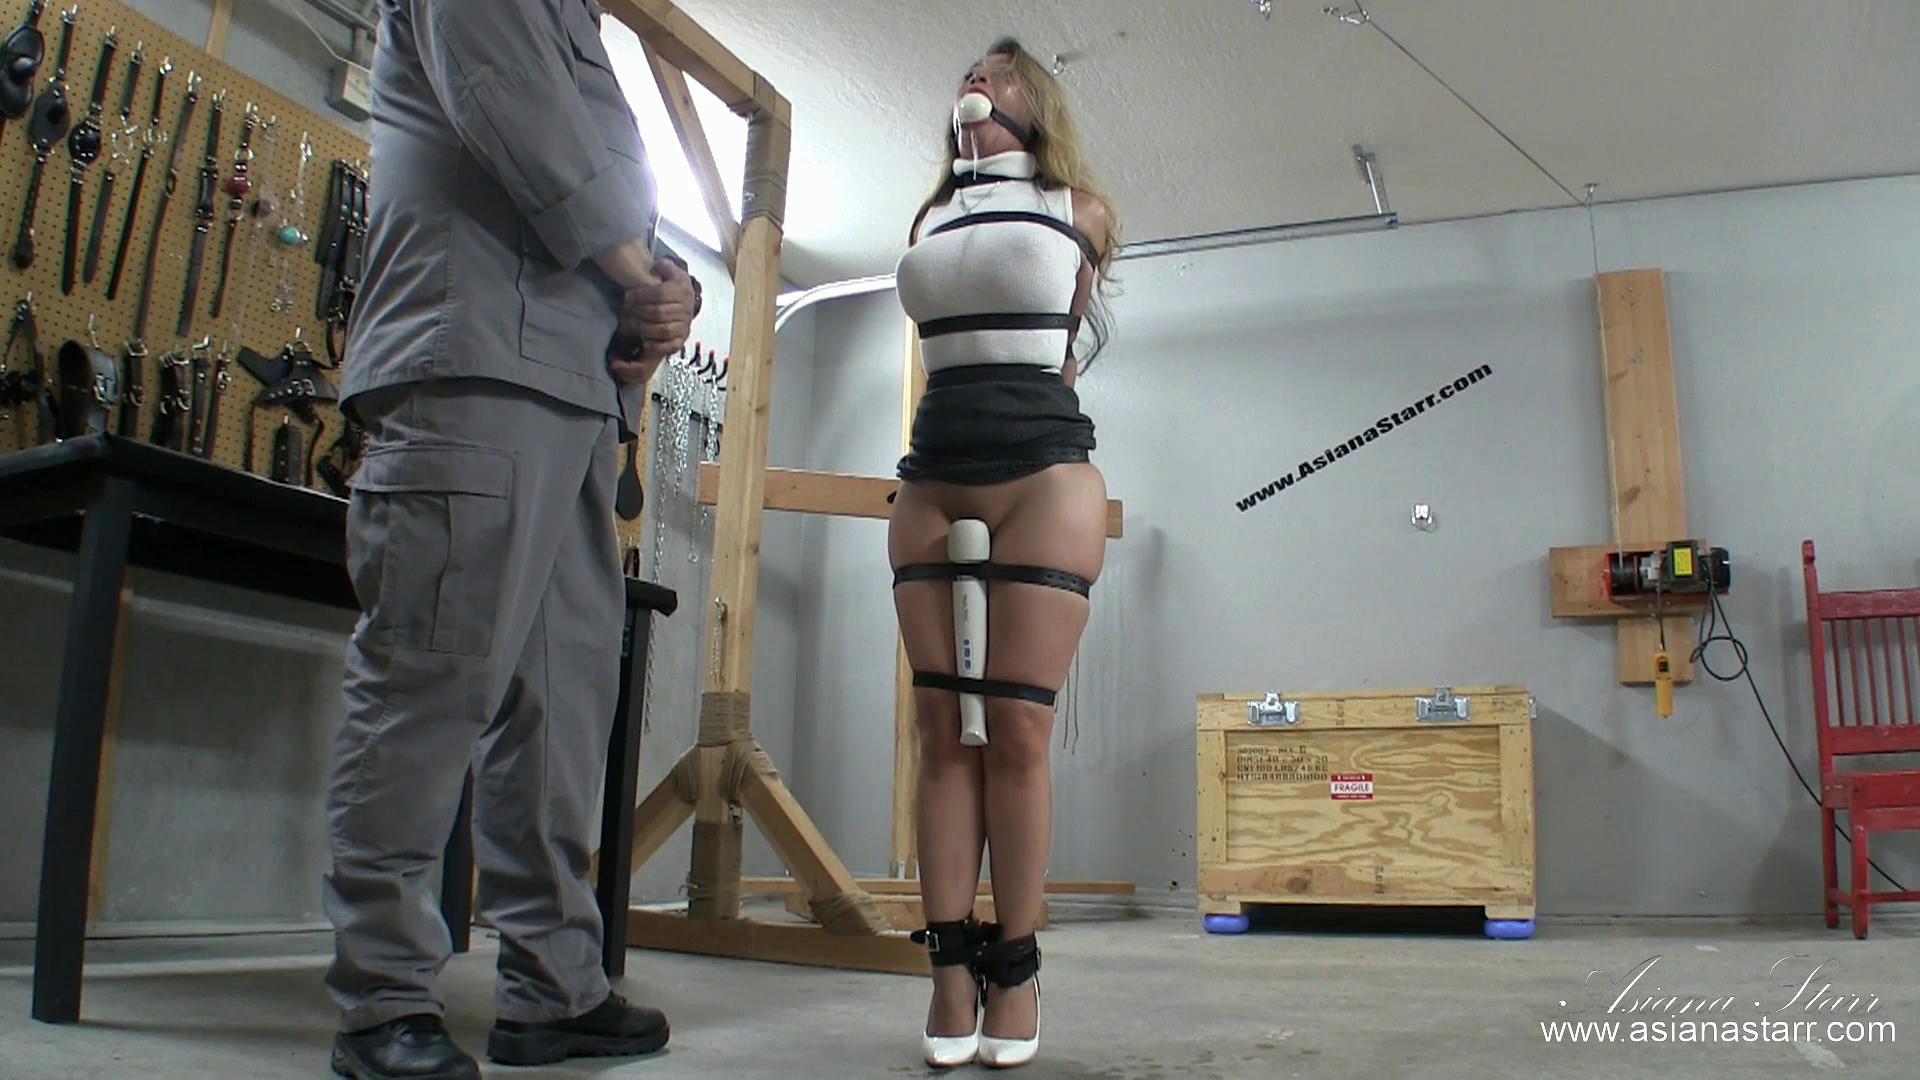 Secretary Fantasies Part 2 Screen Shot 1